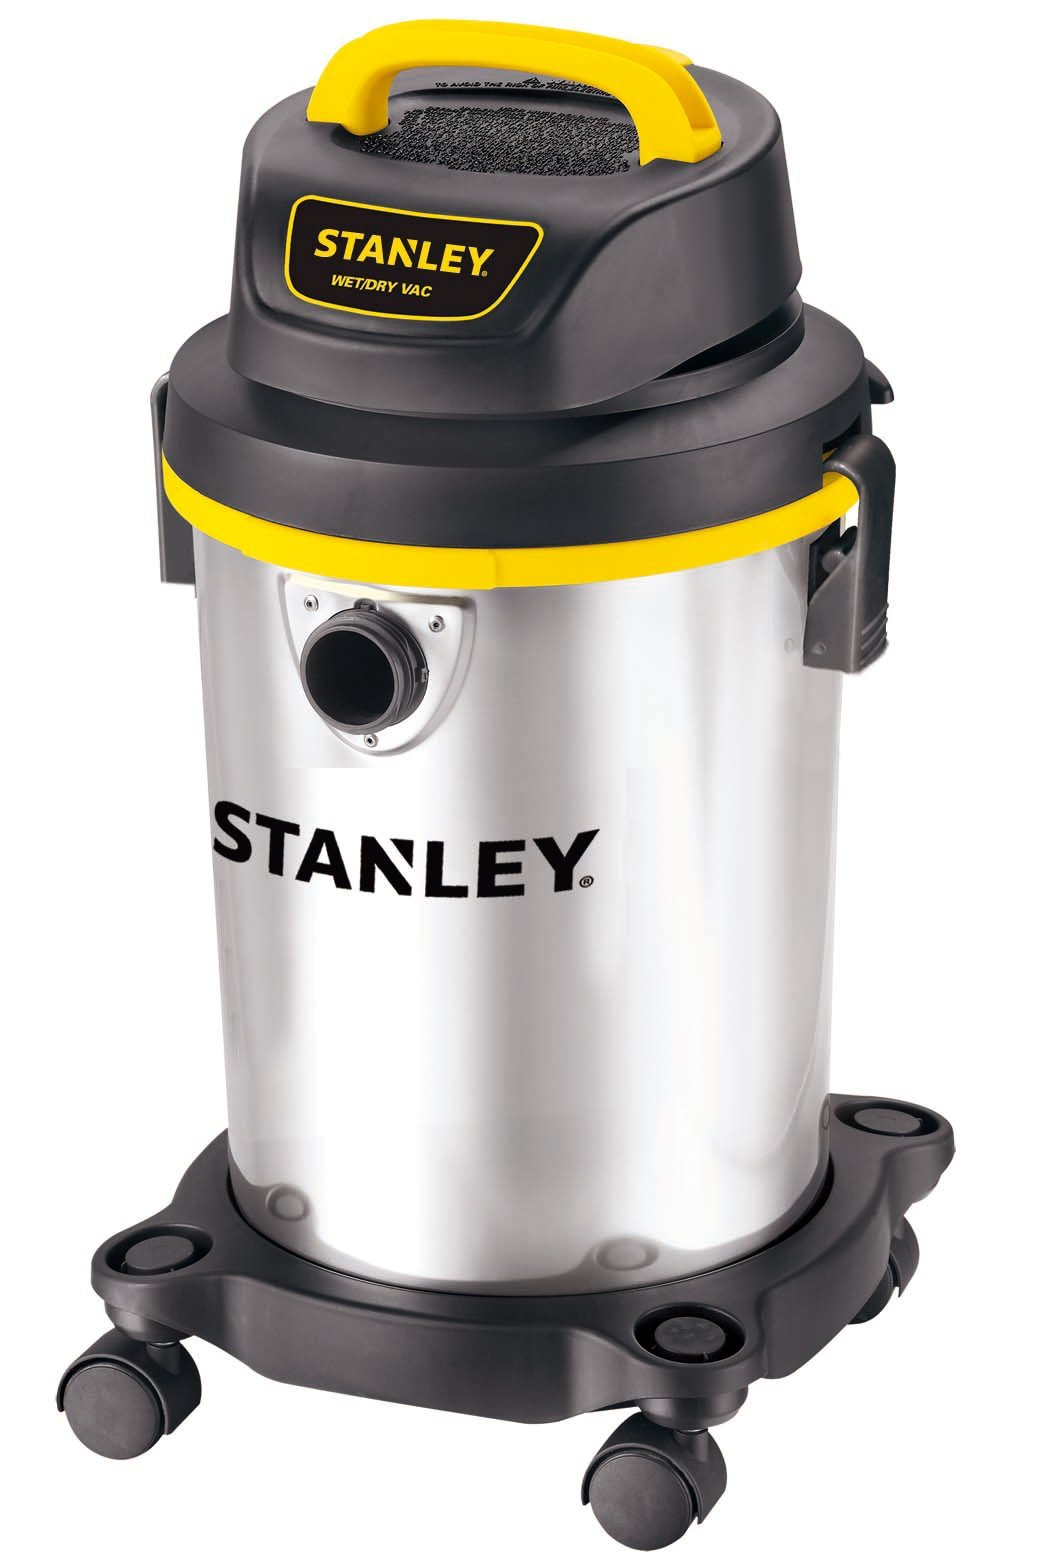 Stanley Wet/Dry Vacuum, 4 Gallon, 4 Horsepower, Stainless Steel Tank by Stanley